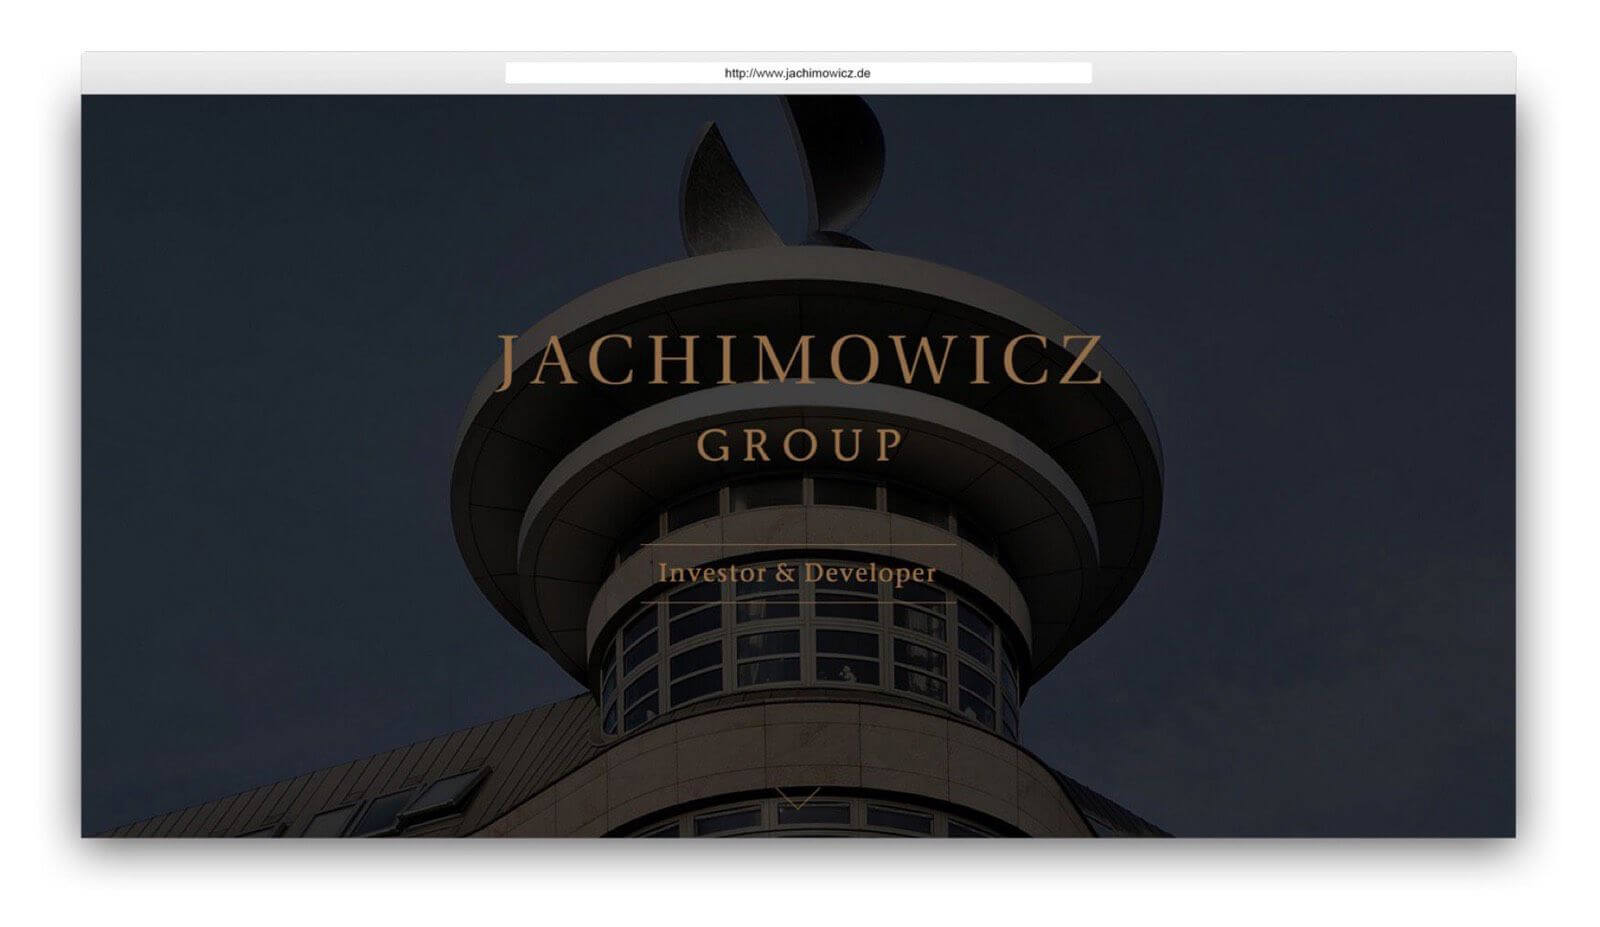 Teaser image of Jachimowicz project